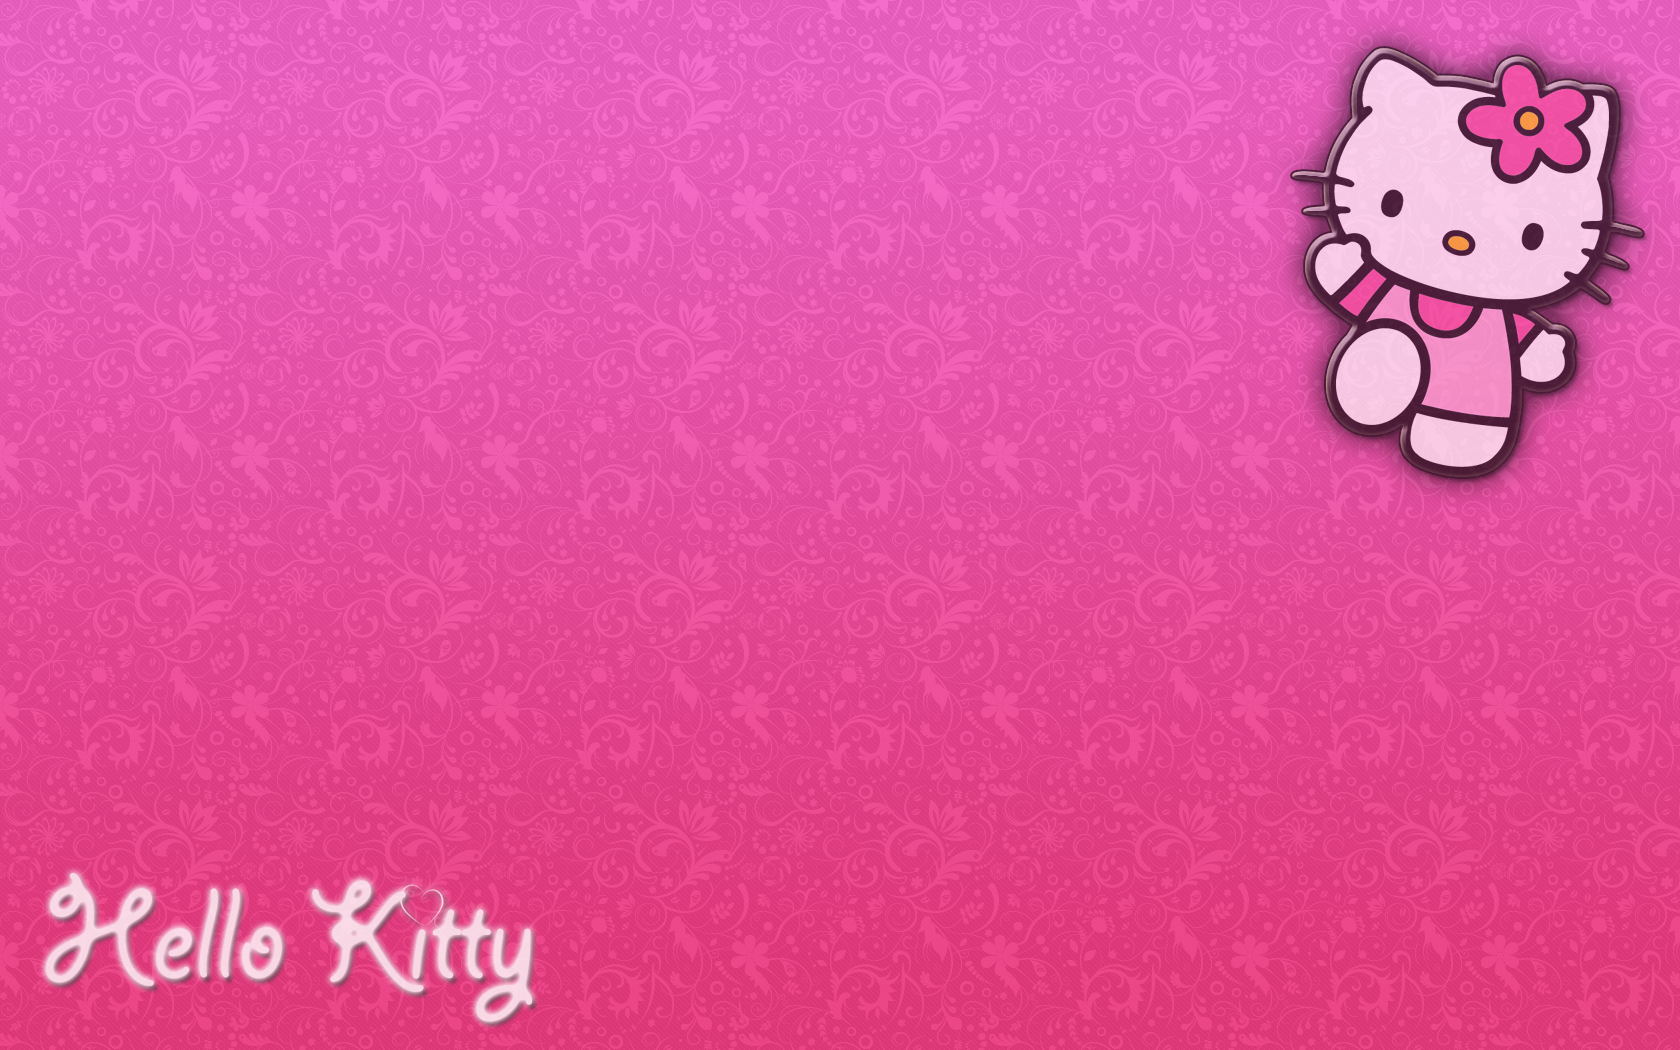 Hello Kitty Cute Backgrounds Wallpaper Wide Imagebank Biz 1680x1050